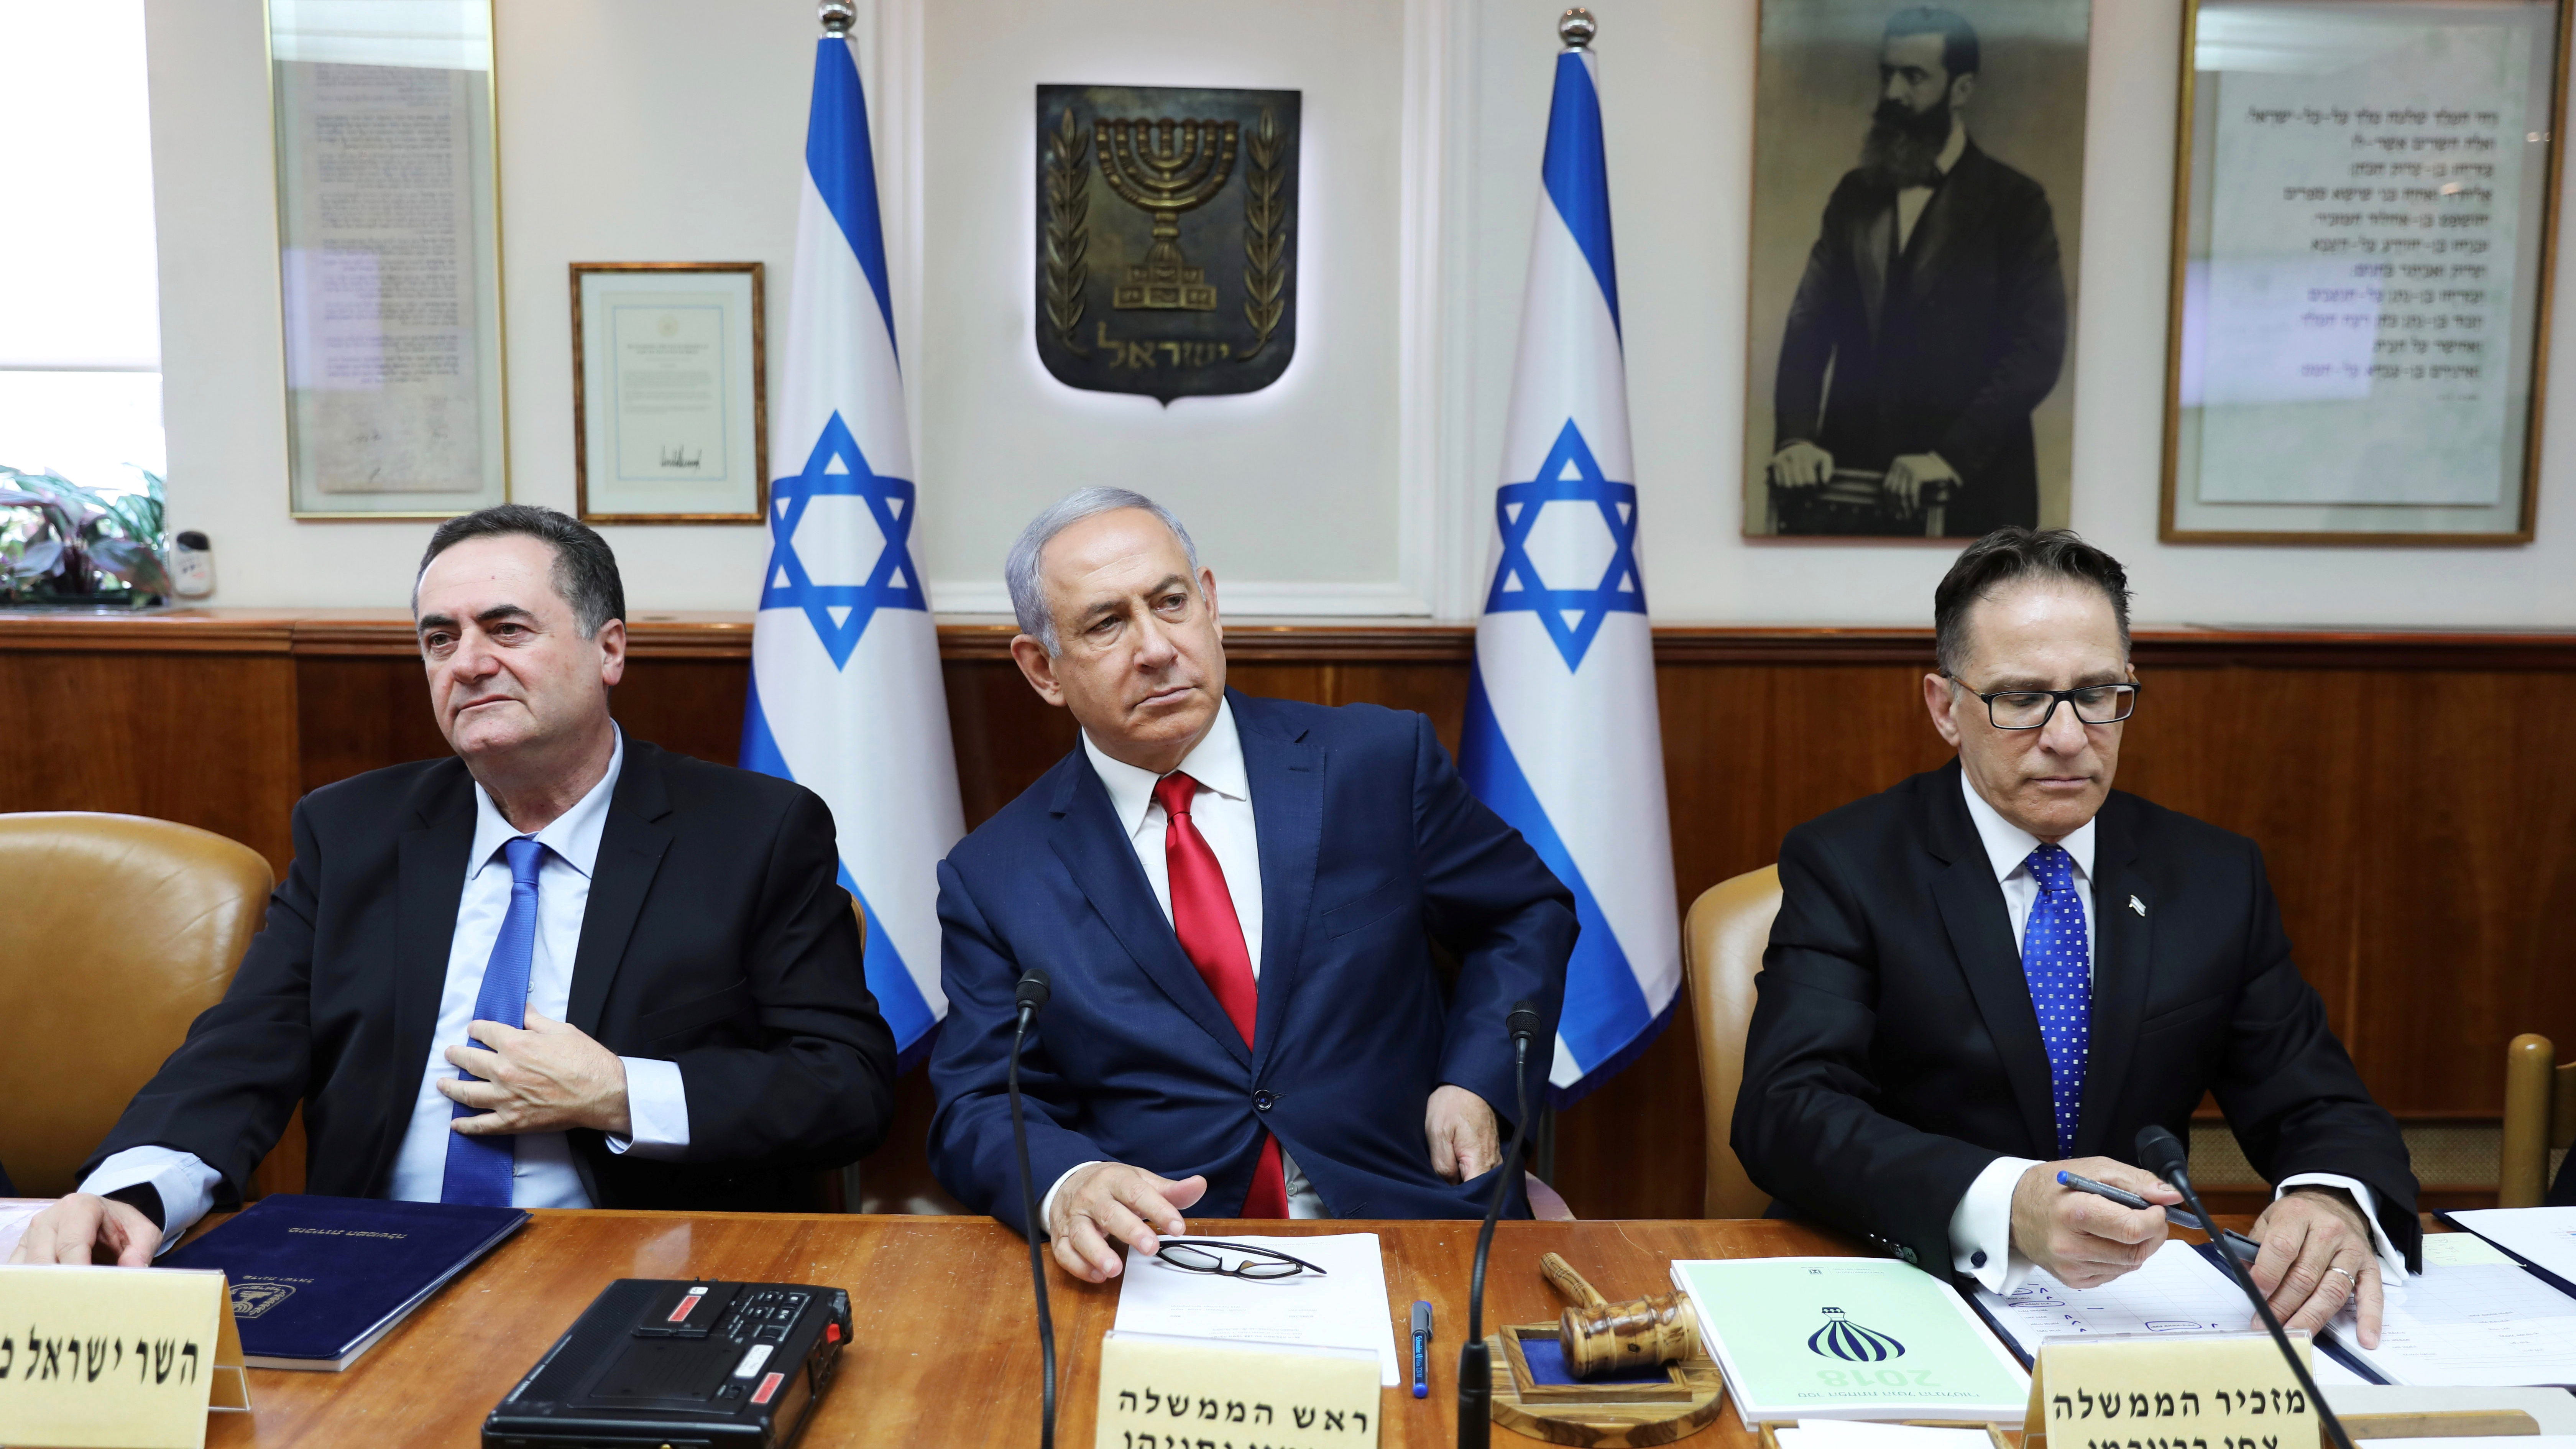 Israeli Prime Minister Benjamin Netanyahu (center), Cabinet Secretary Tzachi Braverman (right) and Minister of Foreign Affairs Israel Katz (left), attend the weekly cabinet meeting in Jerusalem on July 7, 2019.